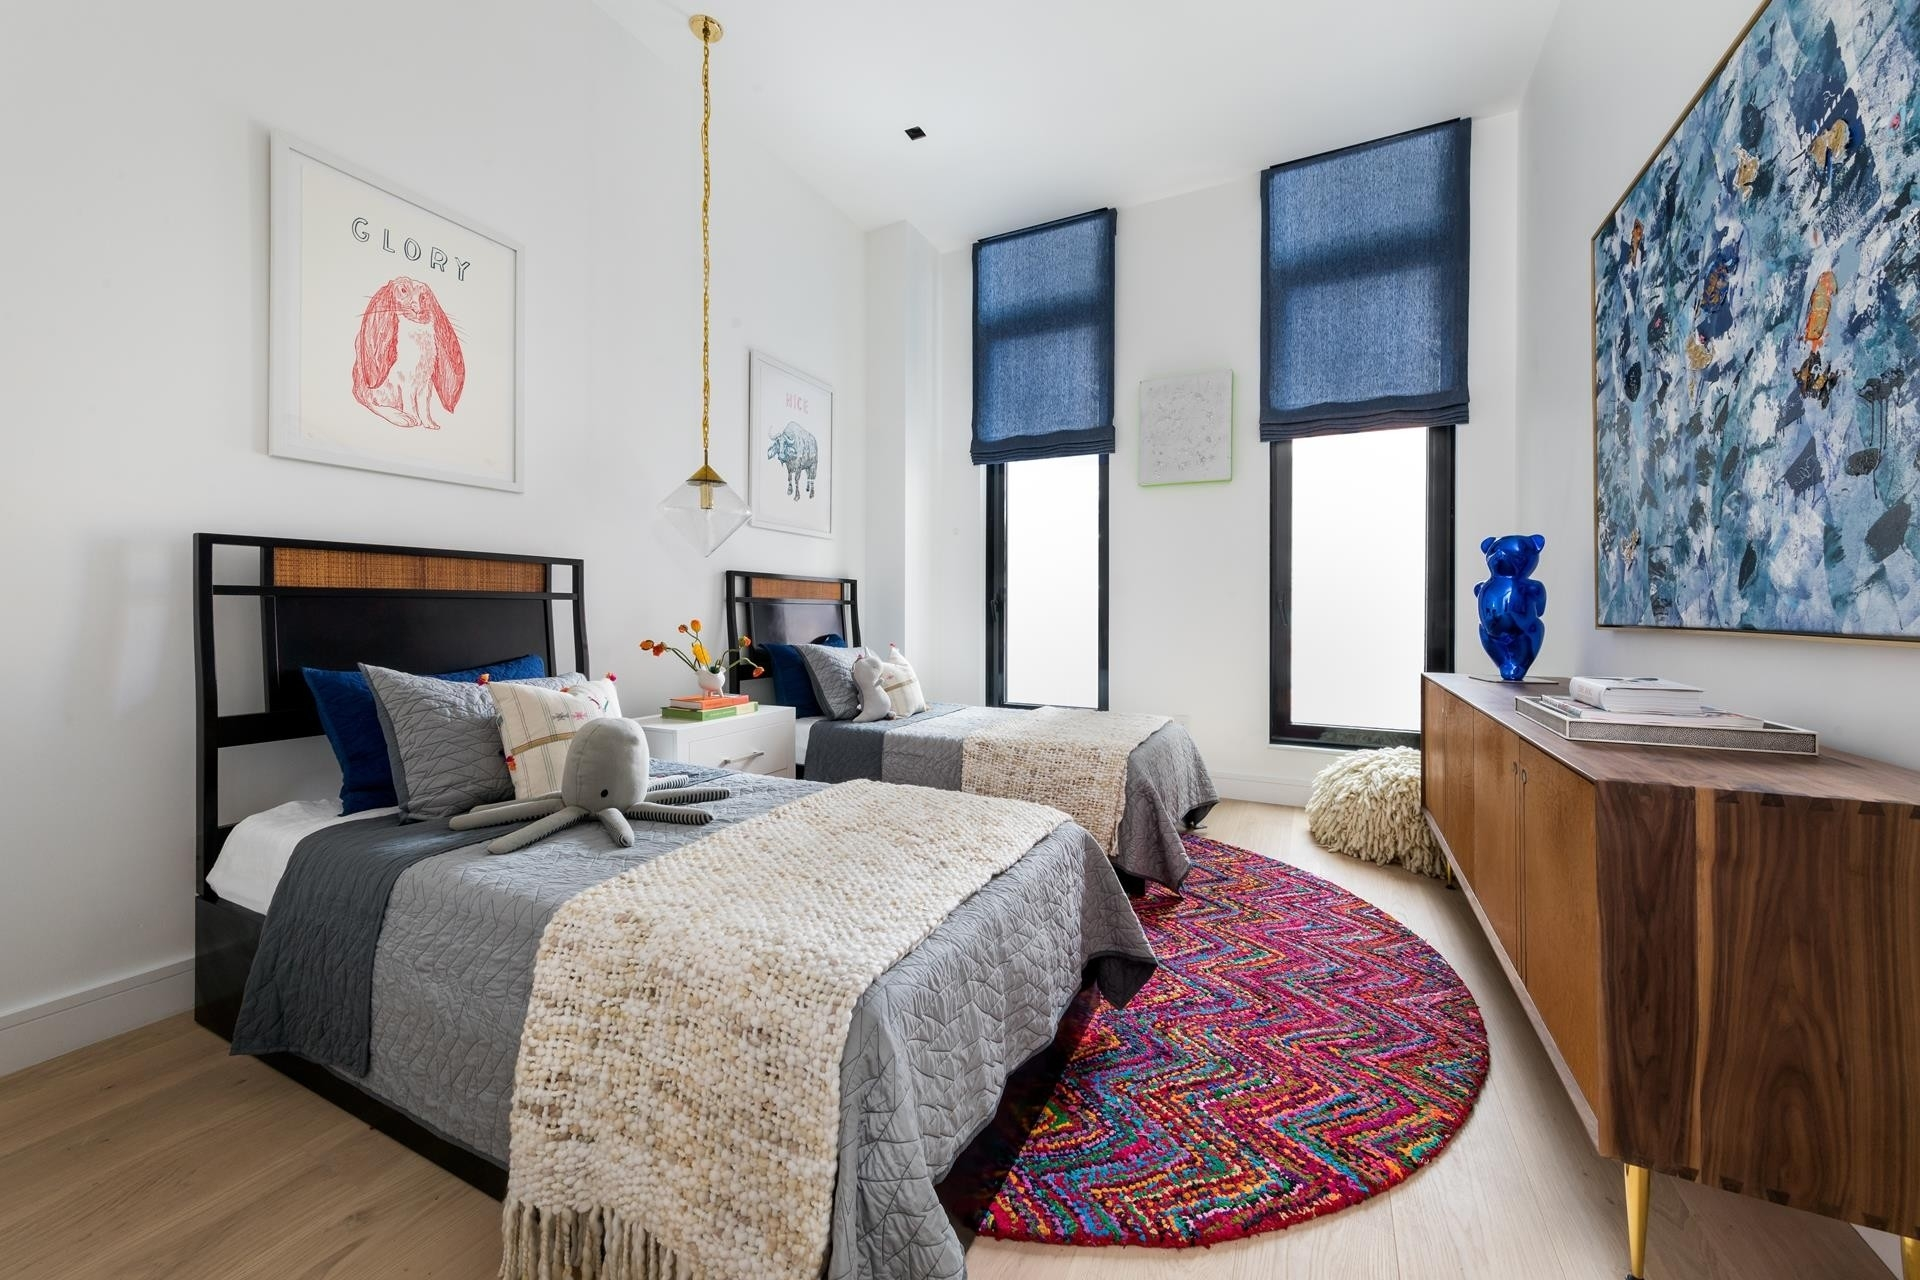 8. Condominiums for Sale at 111 Leroy St, 7 West Village, New York, NY 10014